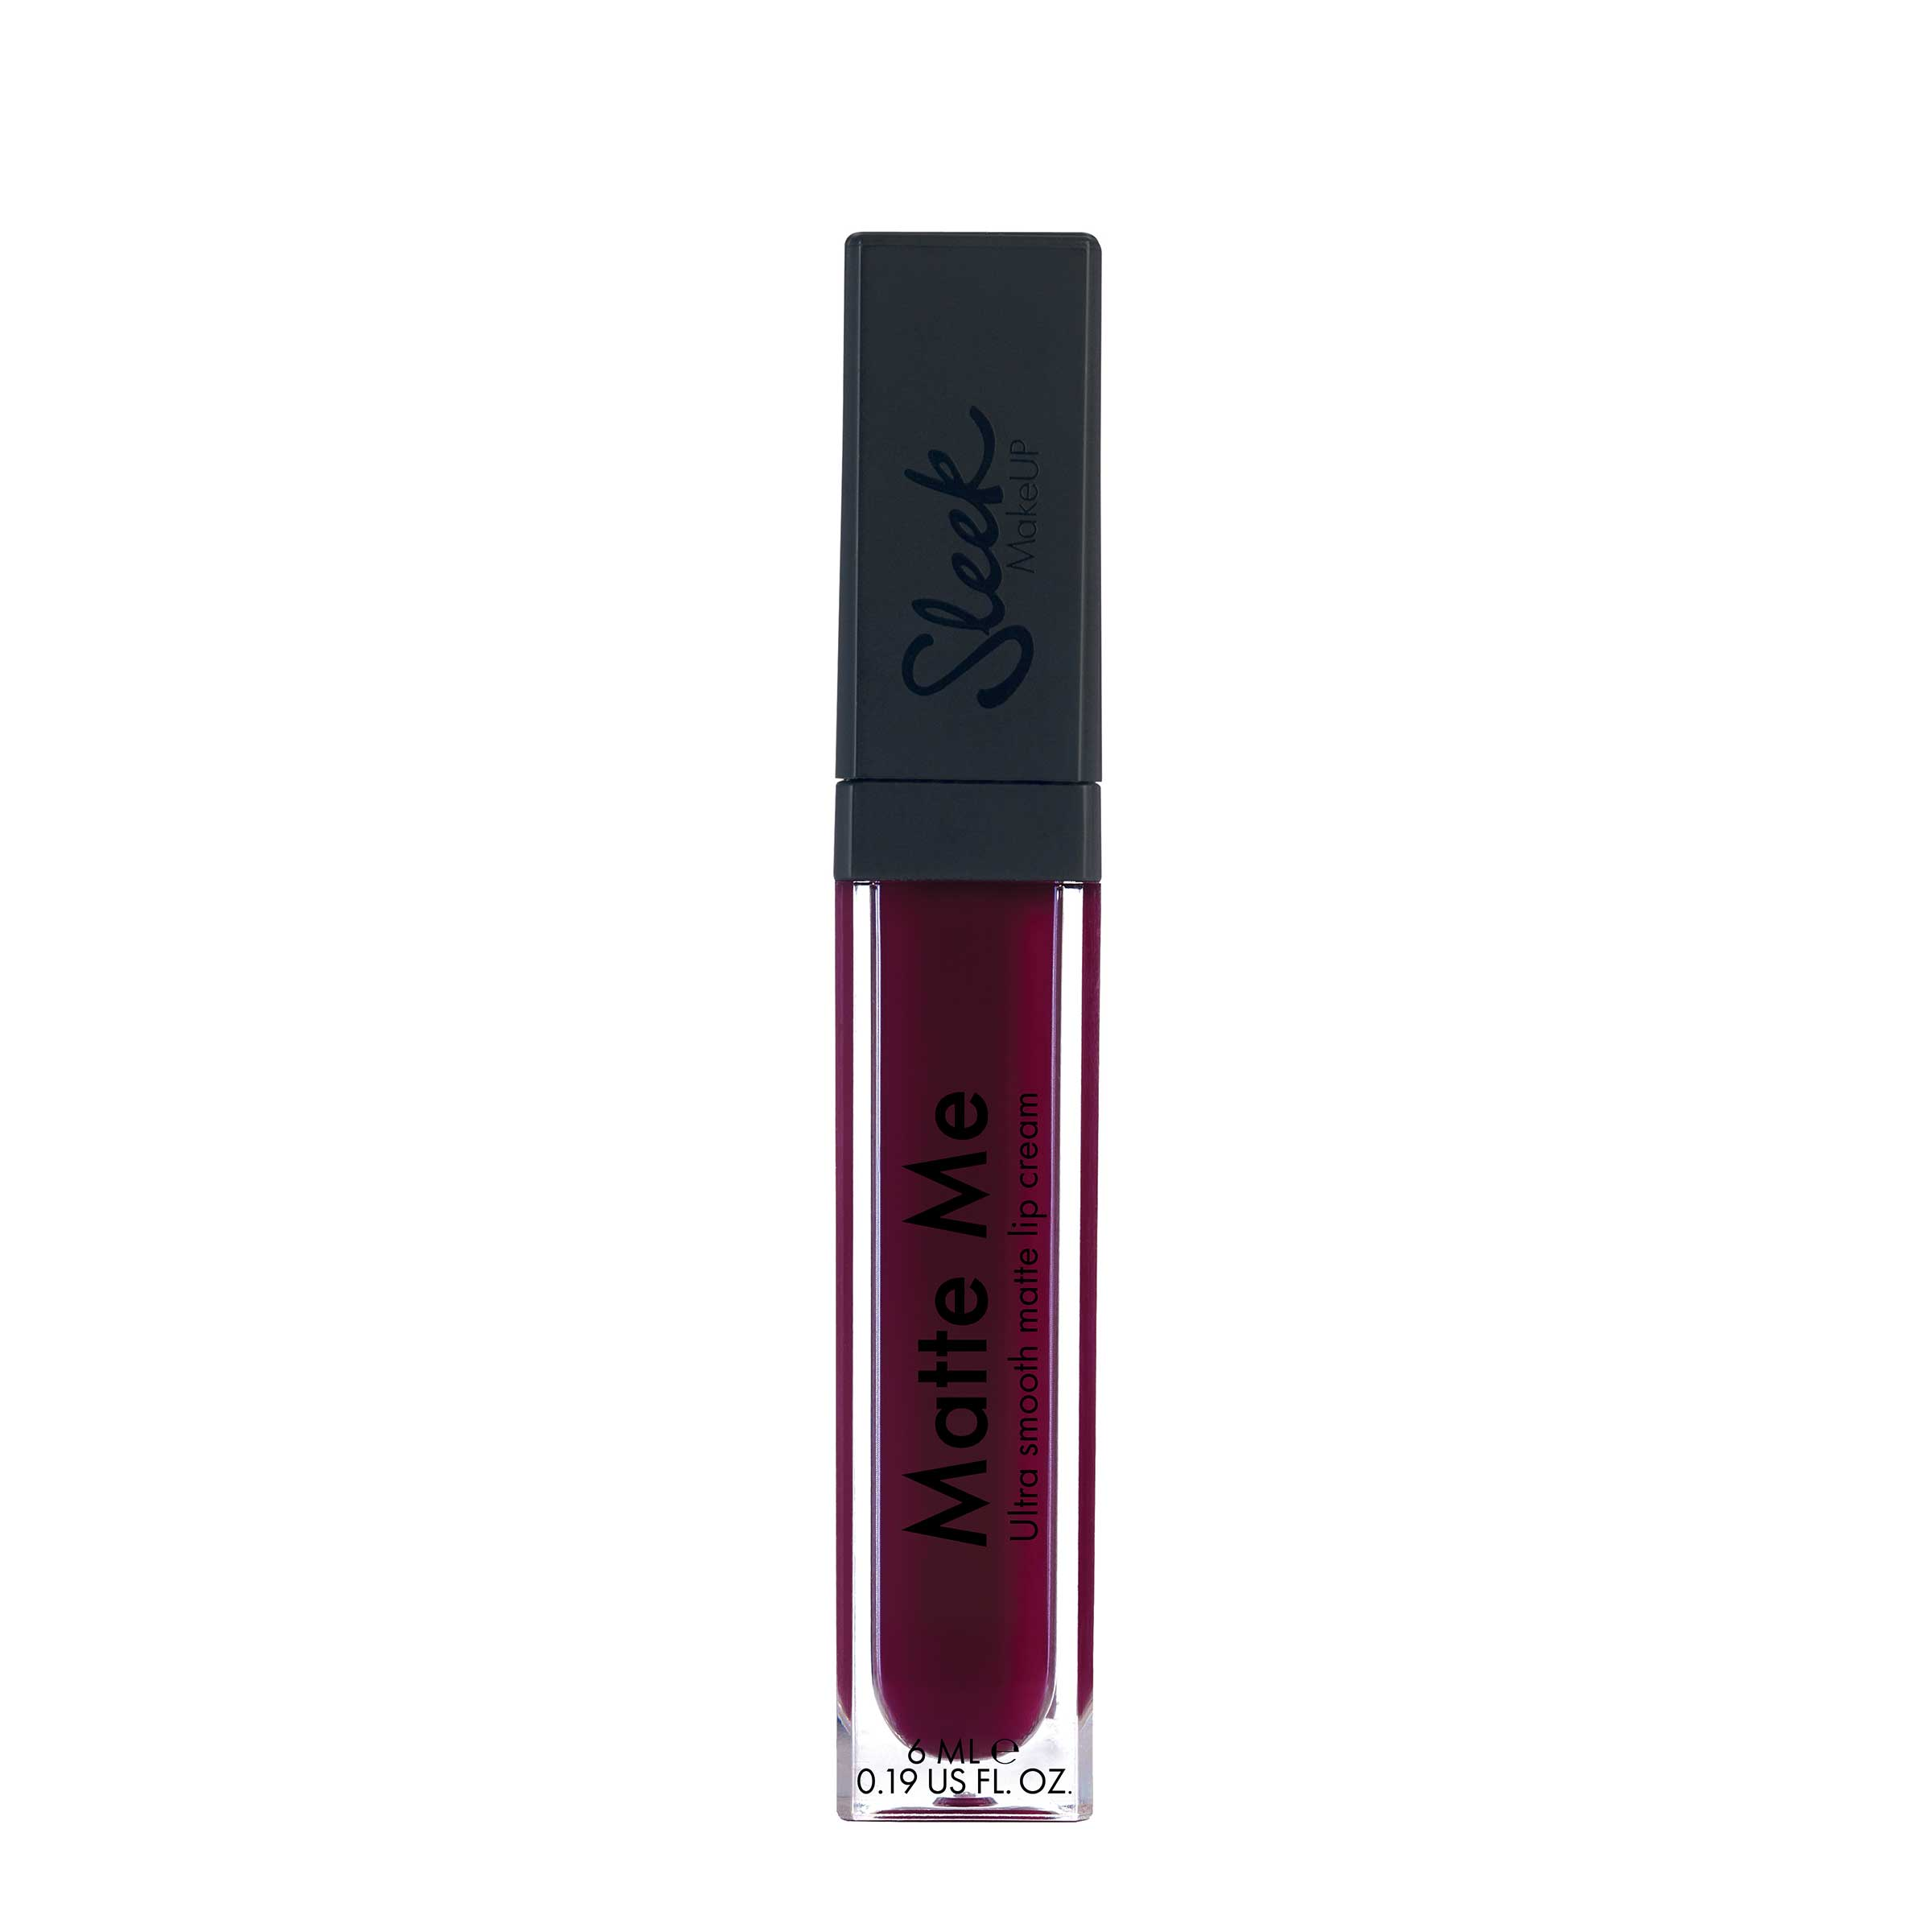 Matte Me Vino Tinto Sleek Makeup